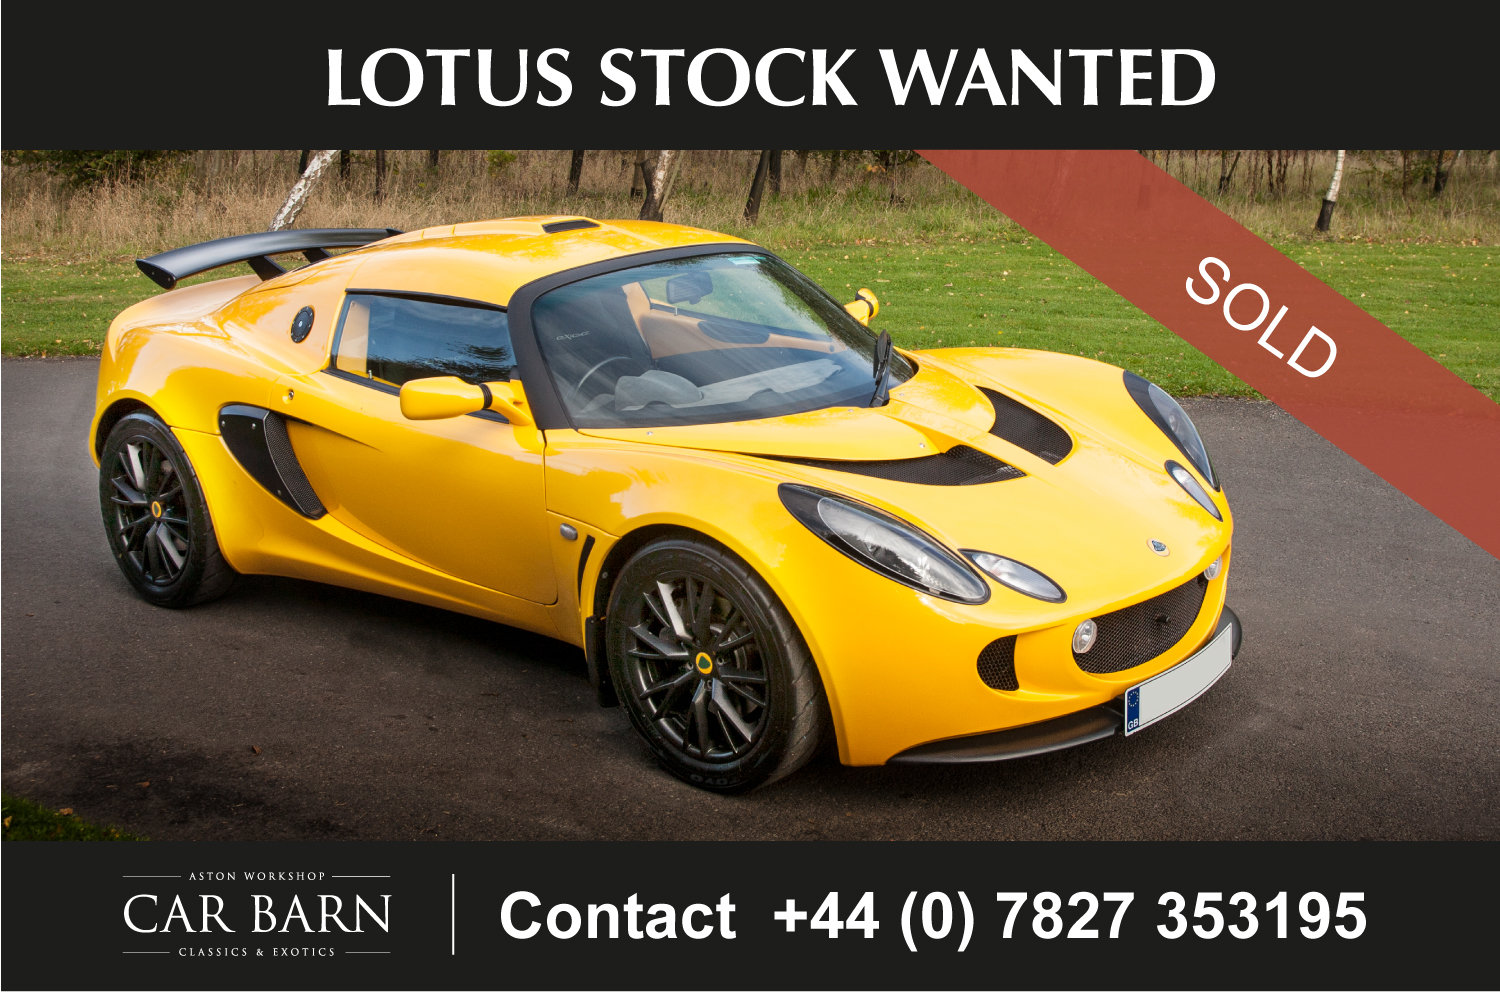 2008 Lotus Stock Wanted For Sale (picture 1 of 1)